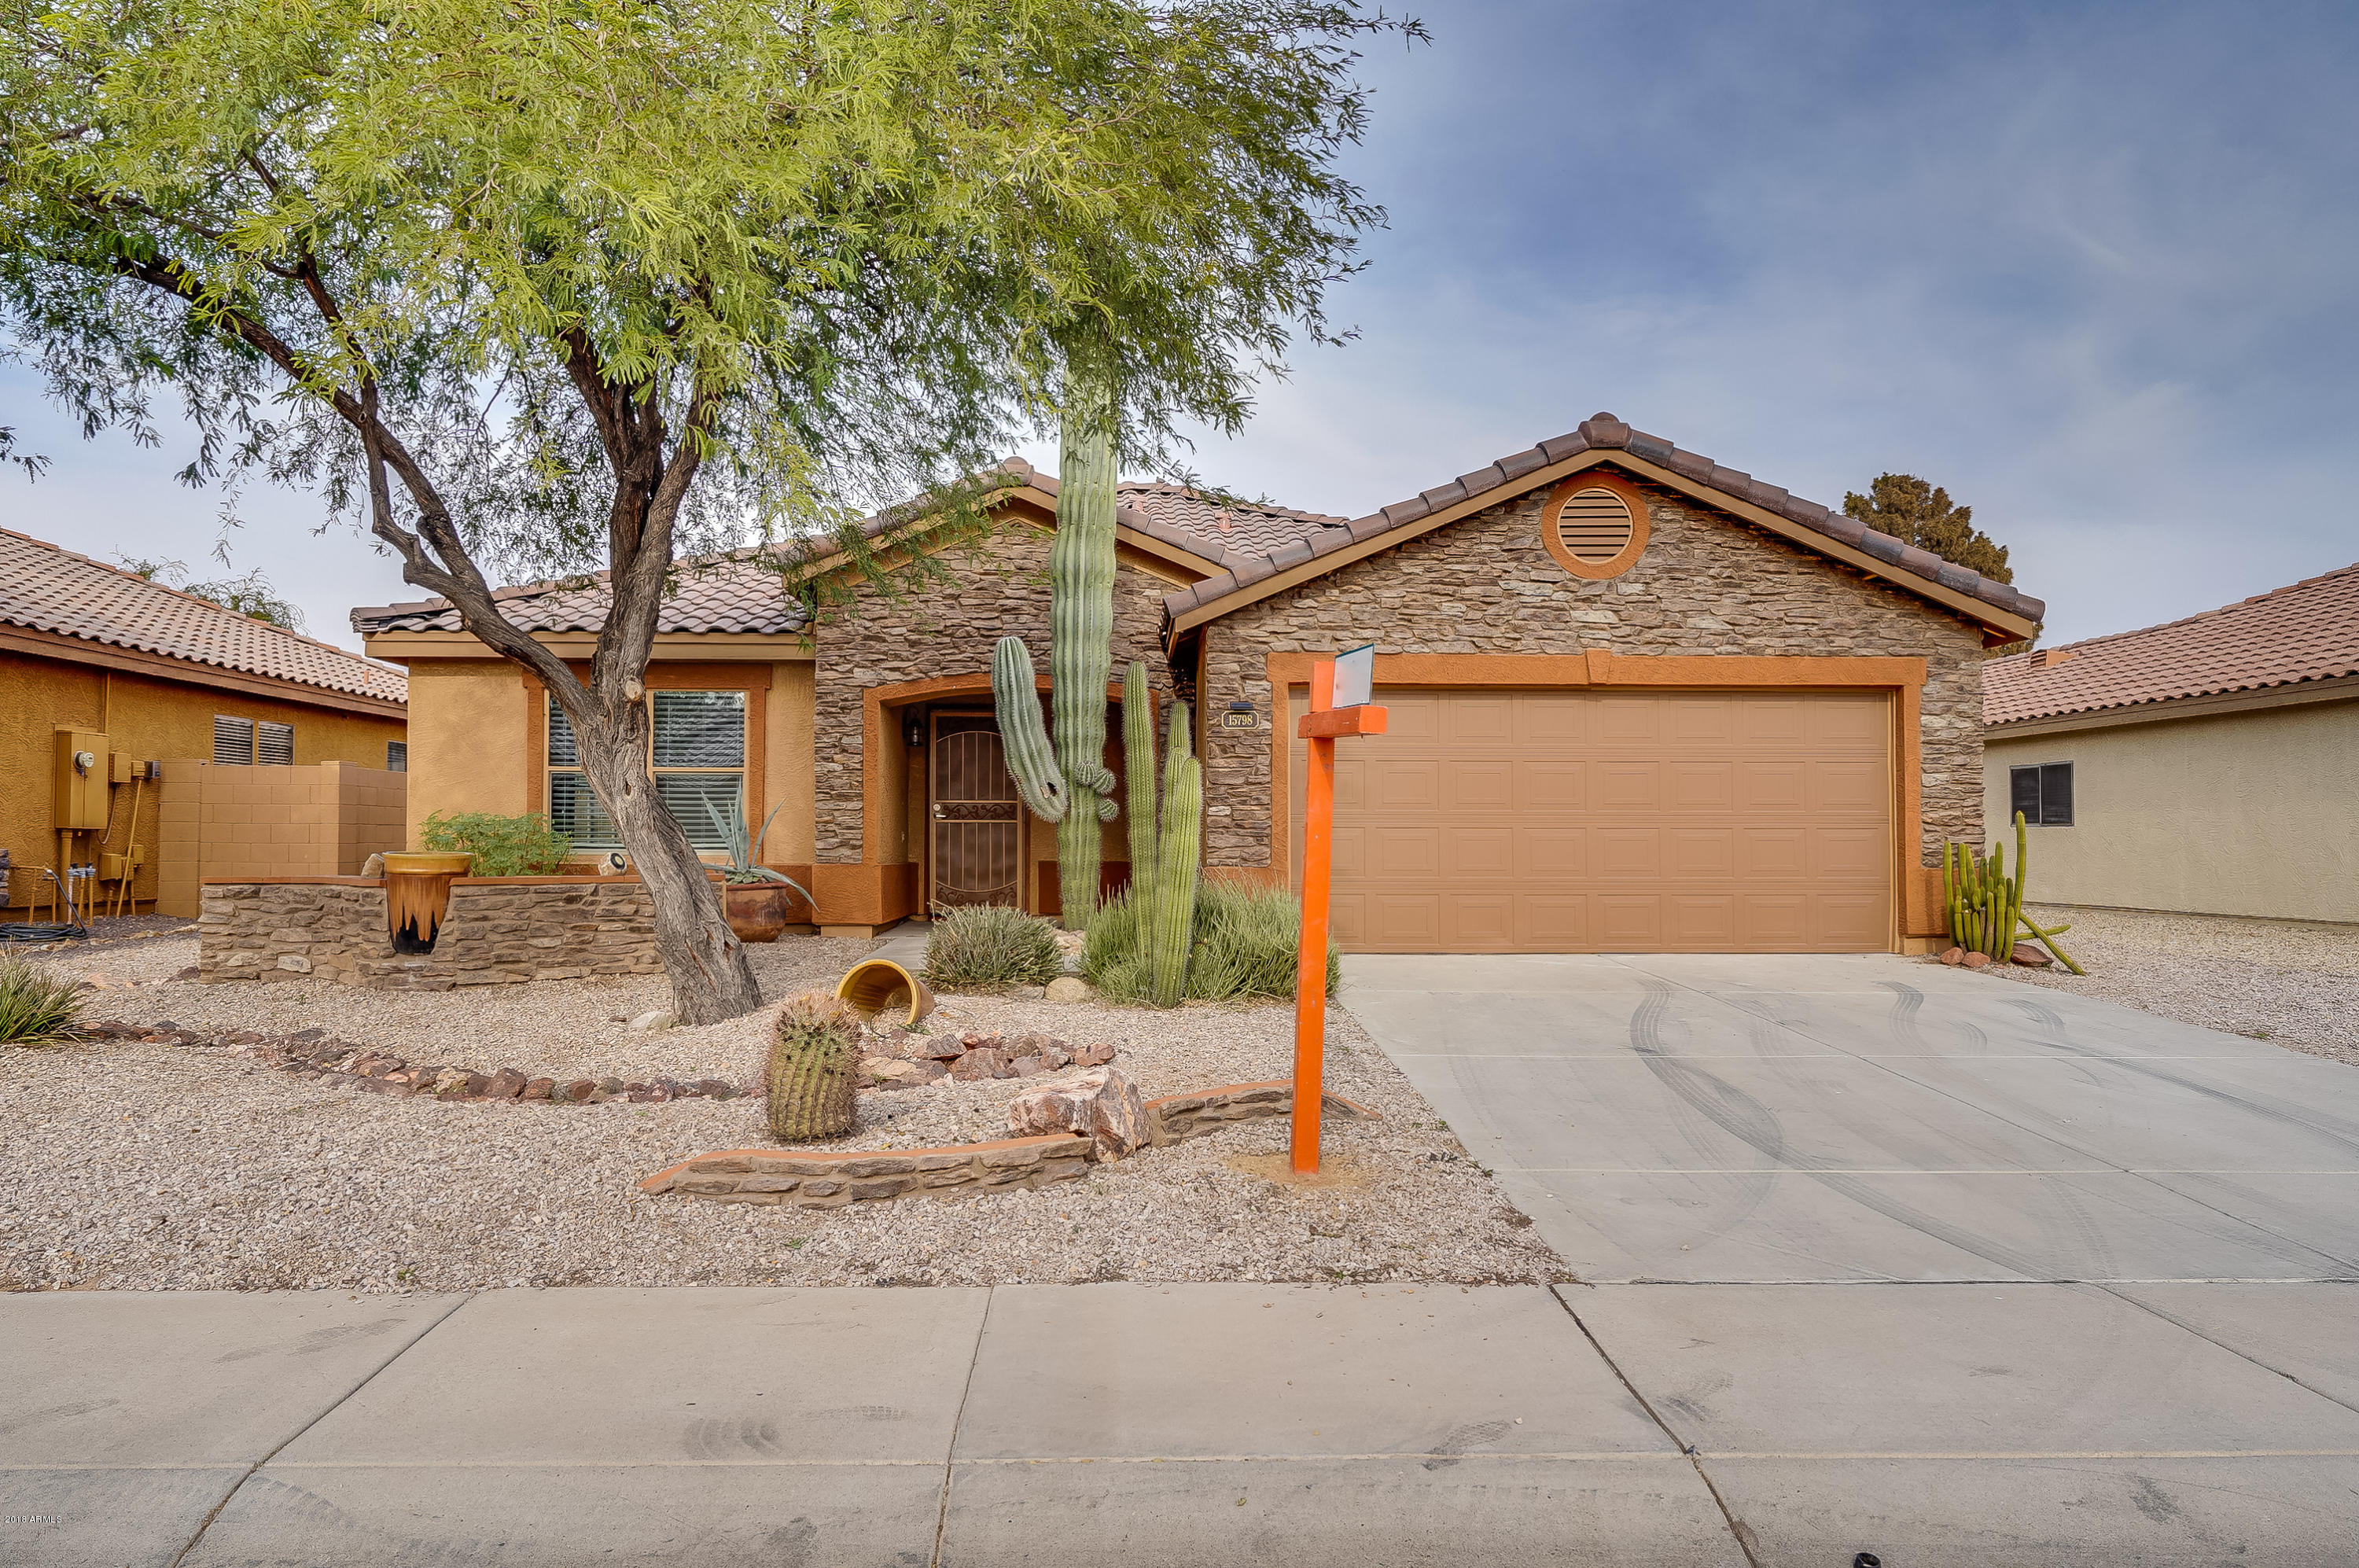 Photo of 15798 W PORT AU PRINCE Lane, Surprise, AZ 85379